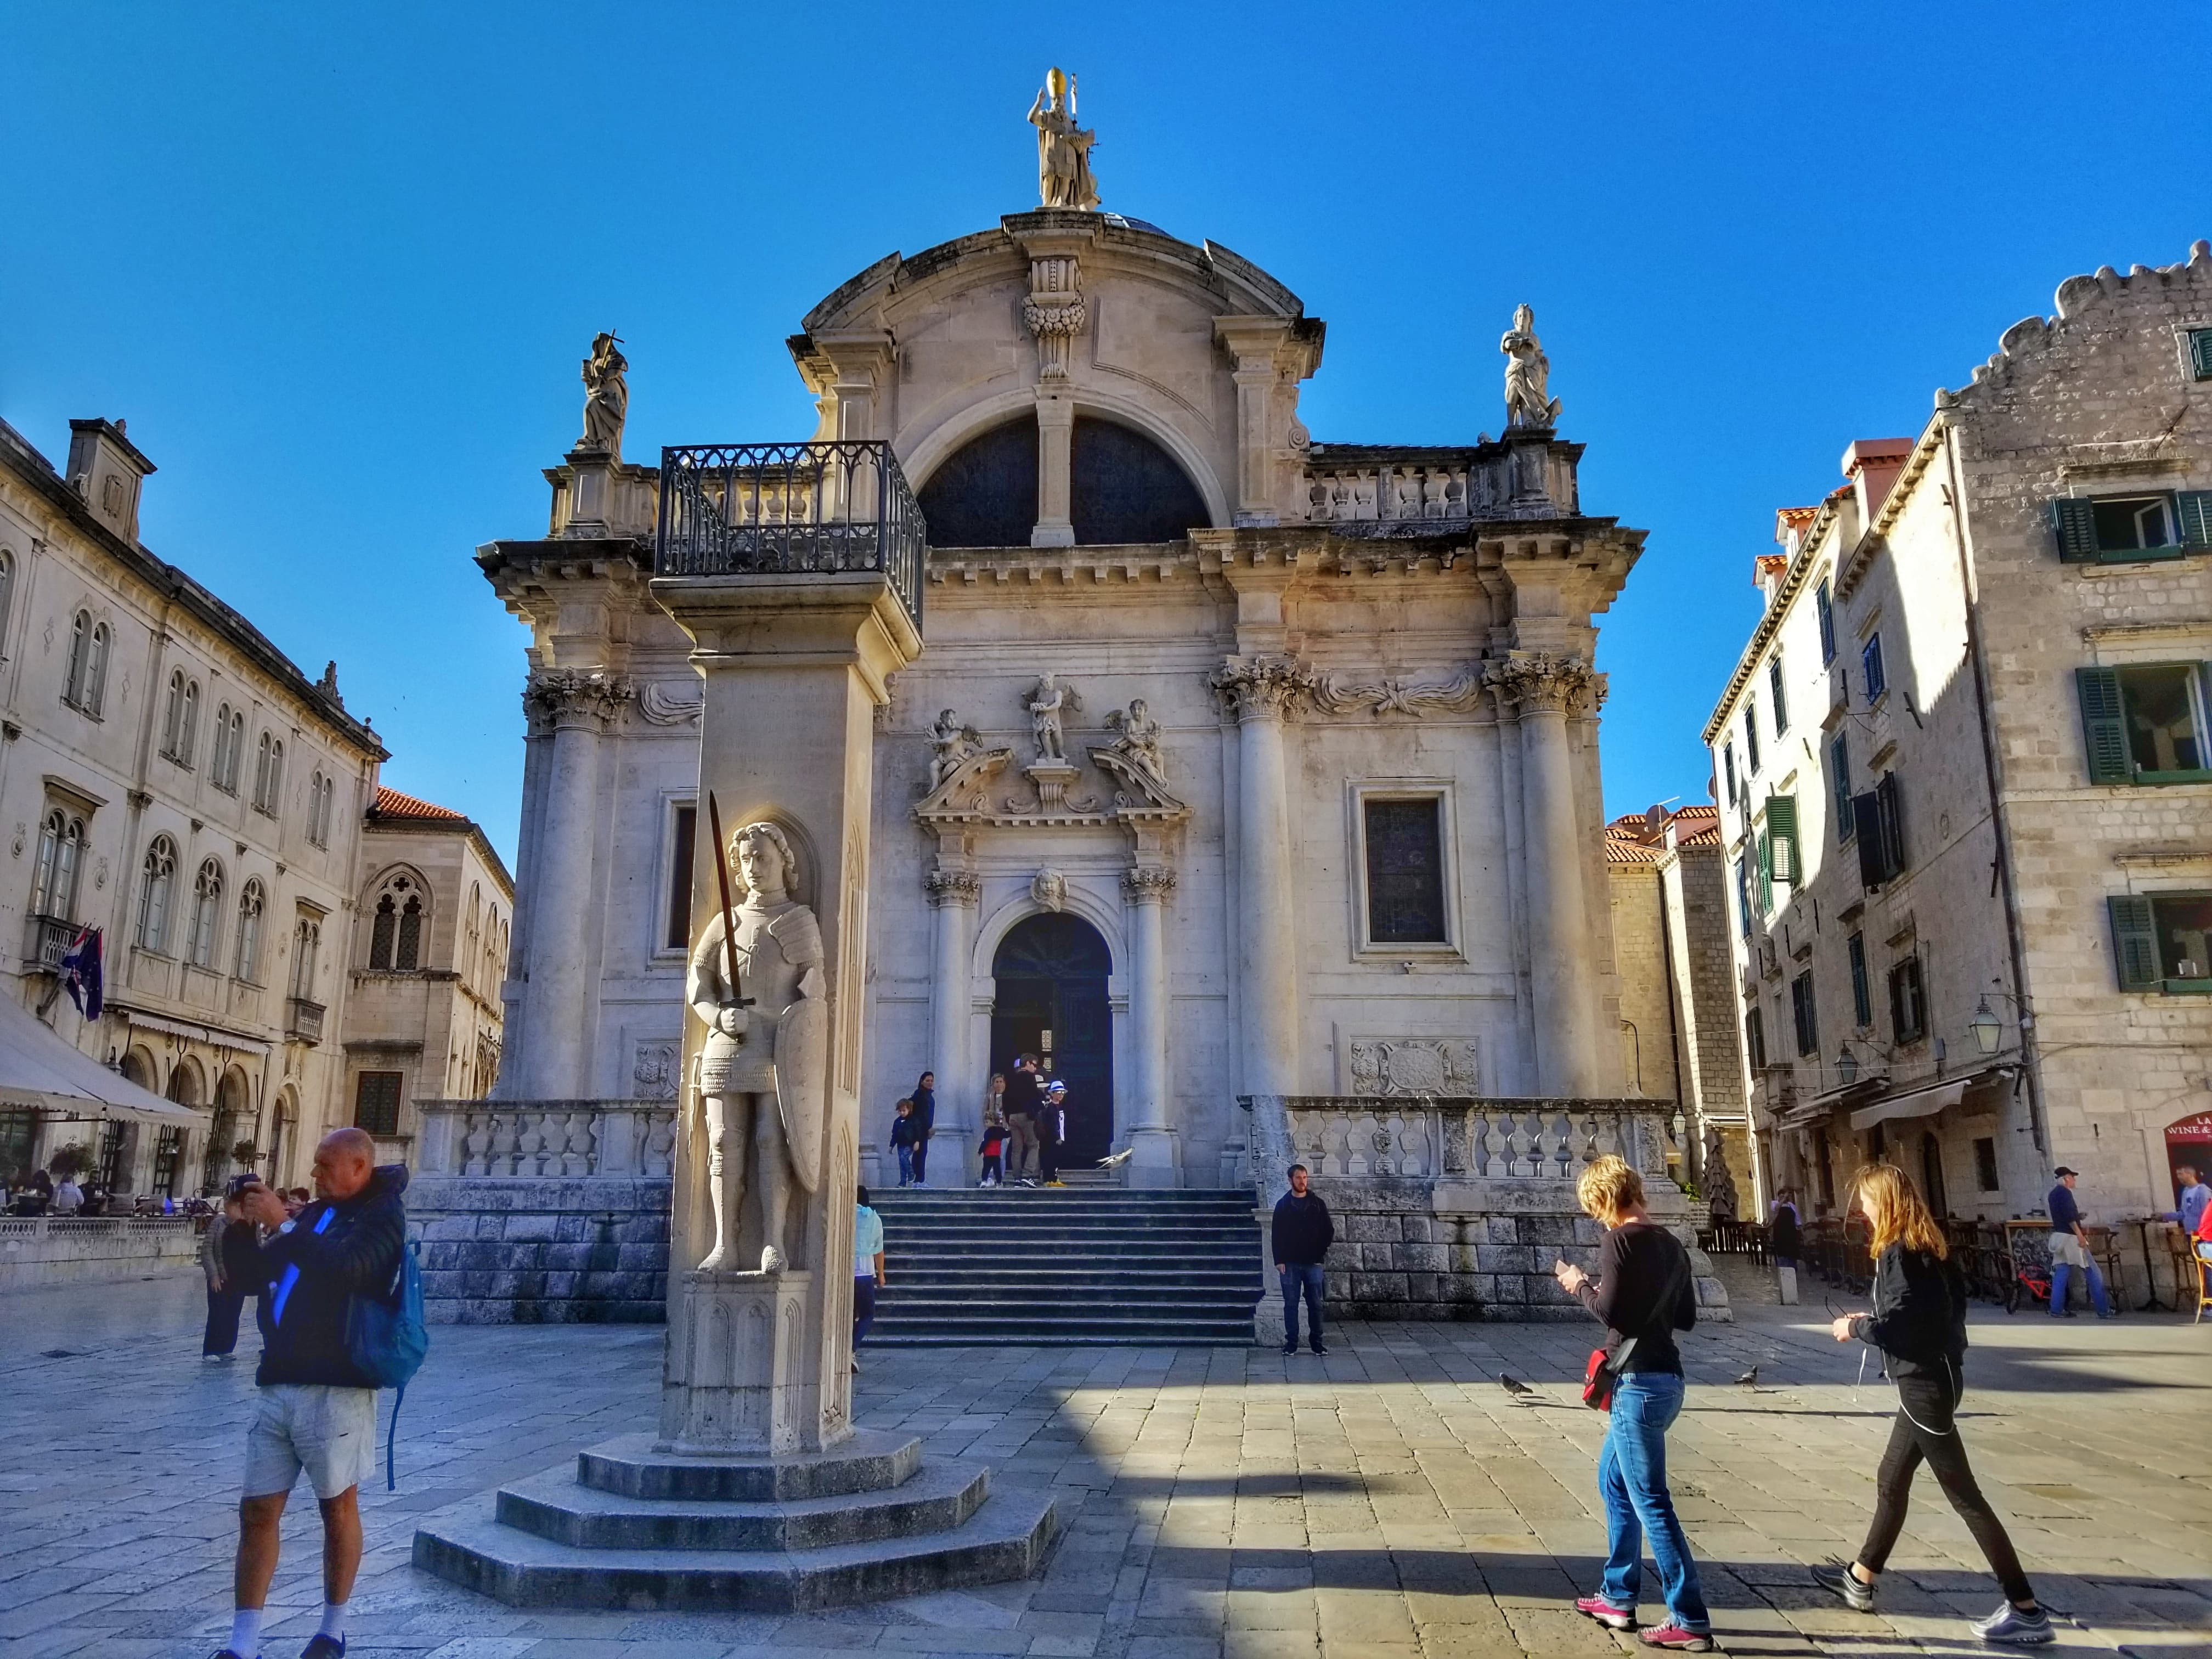 Church of Saint Blaise - One Day In Dubrovnik